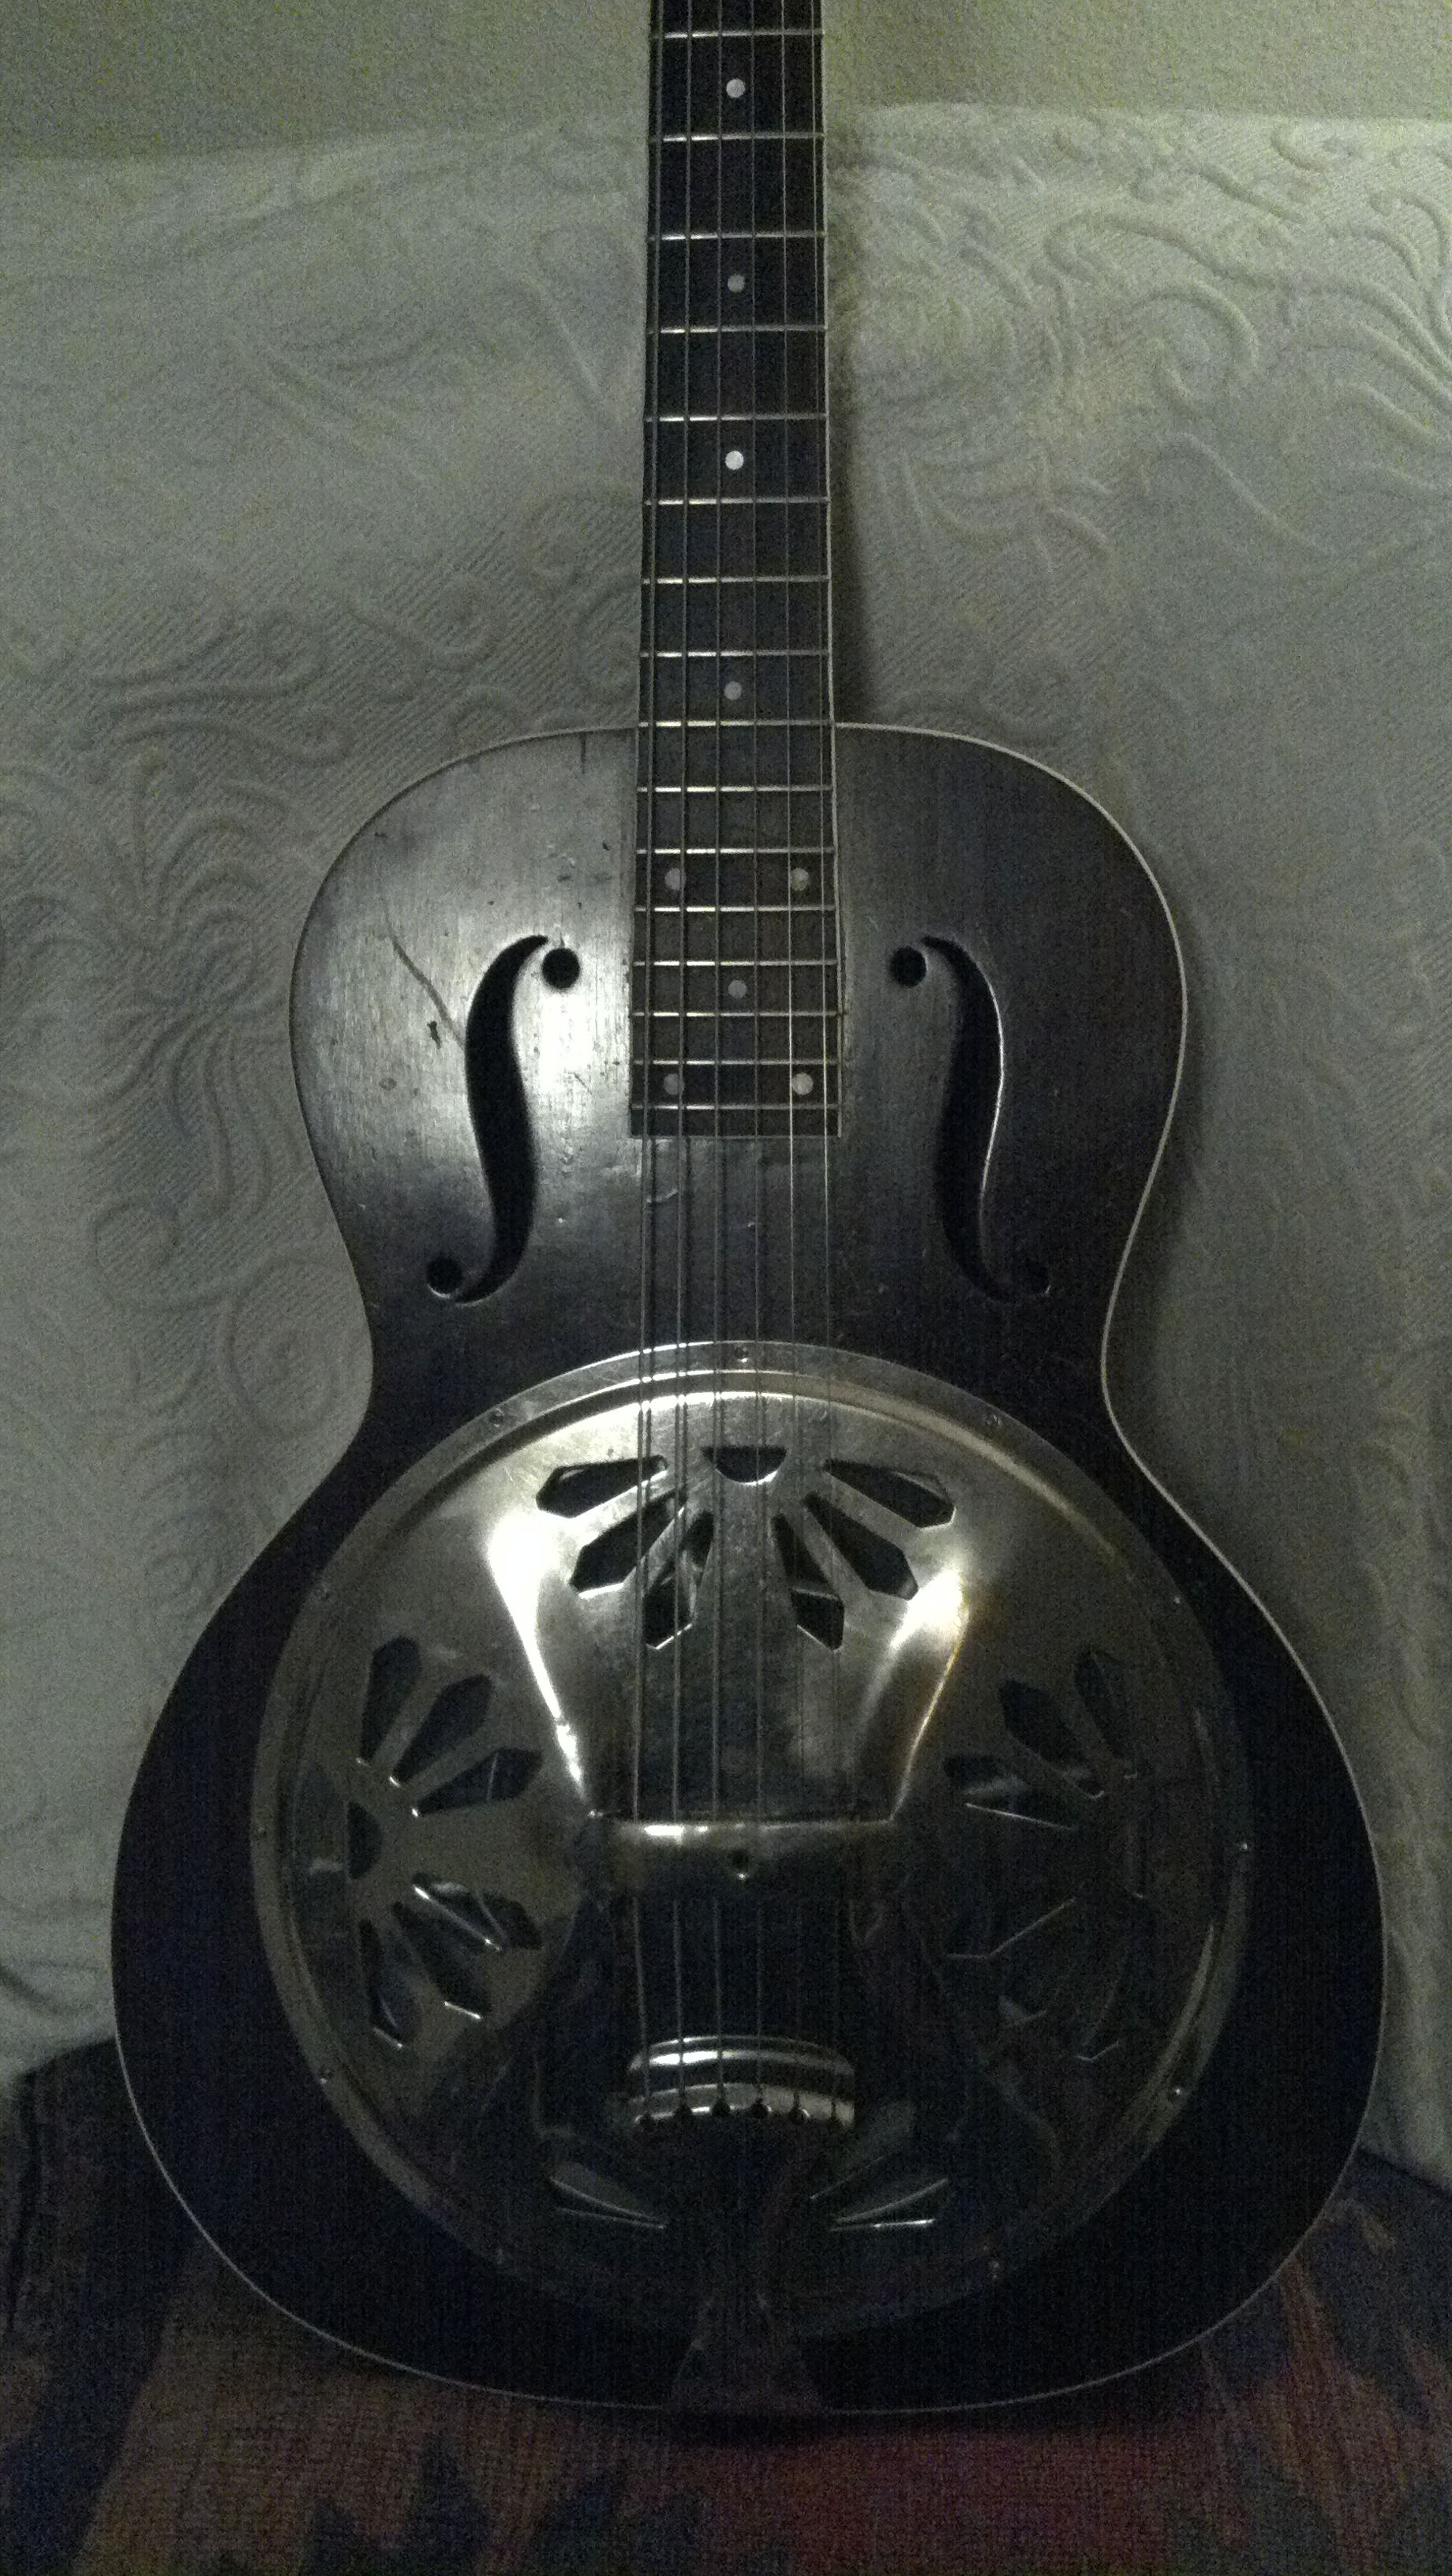 1937 Duolian Resonator Guitar With Amazing Sound What A Pleasure To Play Especially